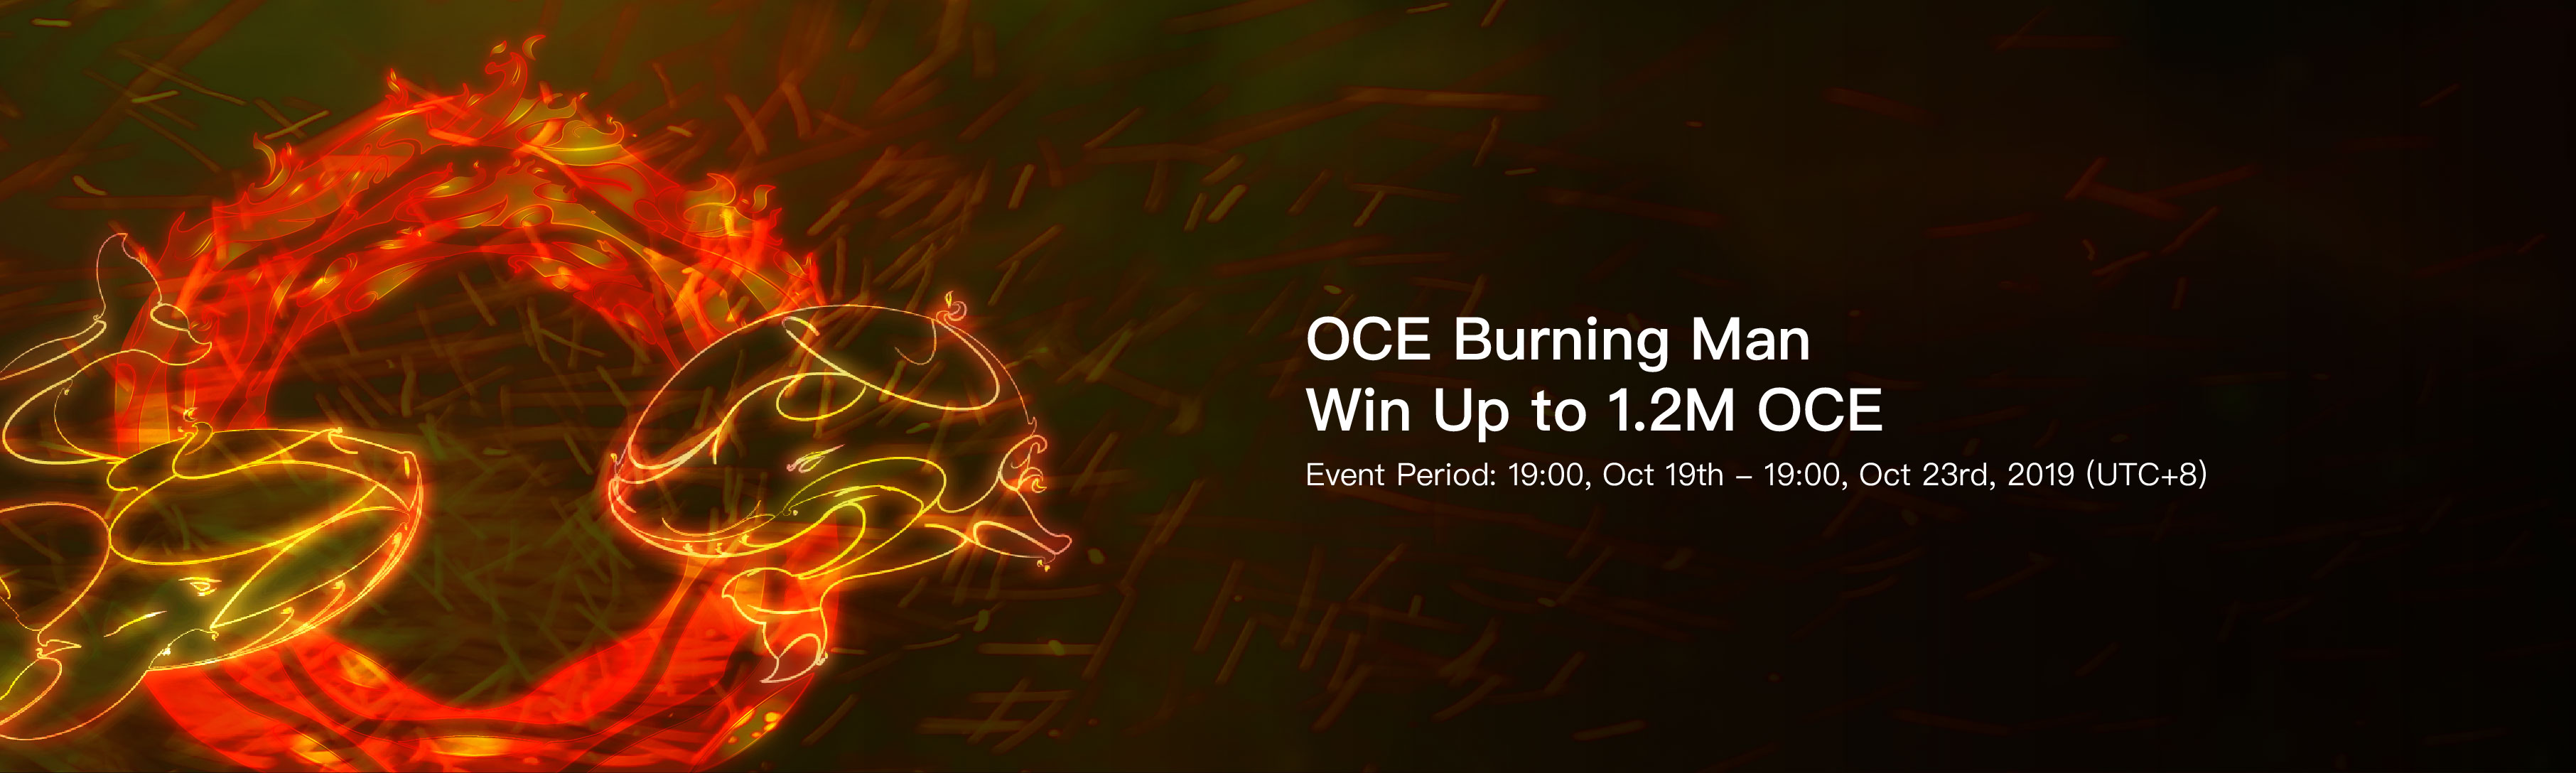 https://support.oceanex.pro/hc/en-us/articles/360034916272-OCE-Burning-Man-Win-Up-to-1-2M-OCE